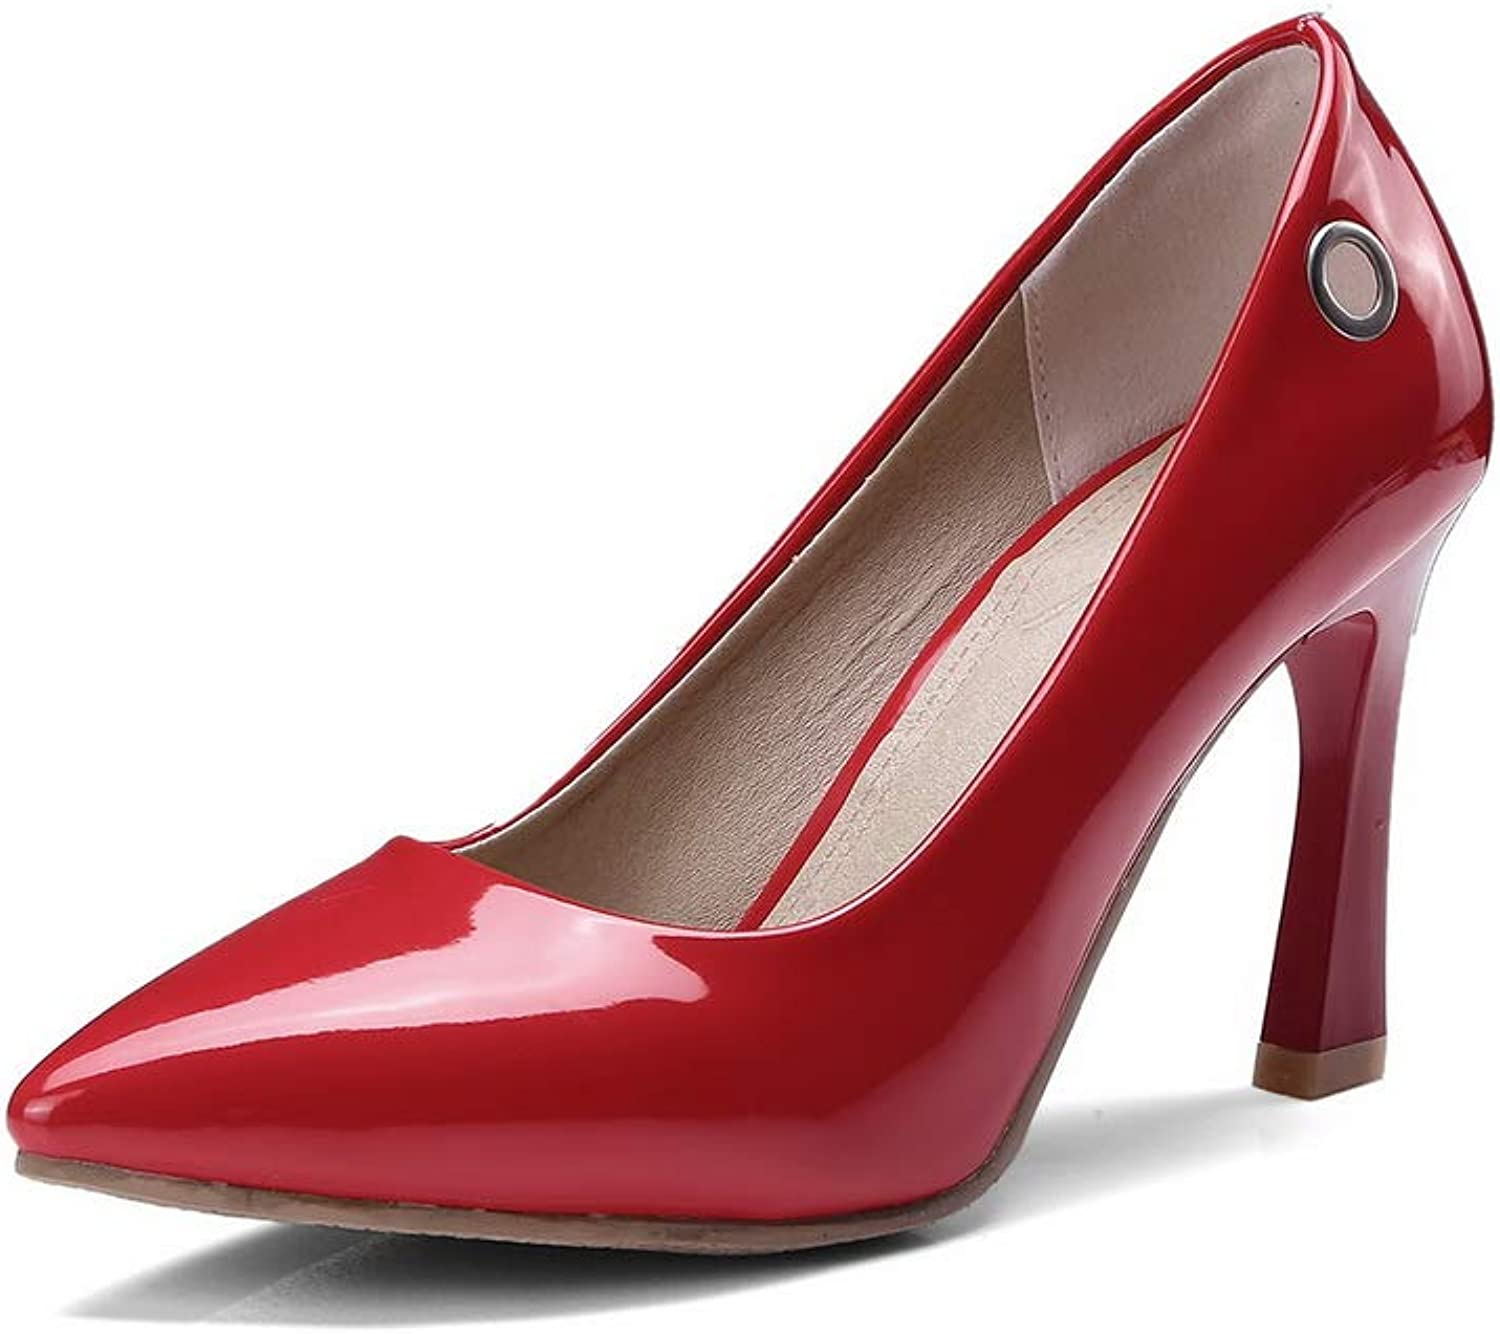 1TO9 Womens Solid Travel Pumps-shoes Urethane Pumps shoes MMS06272